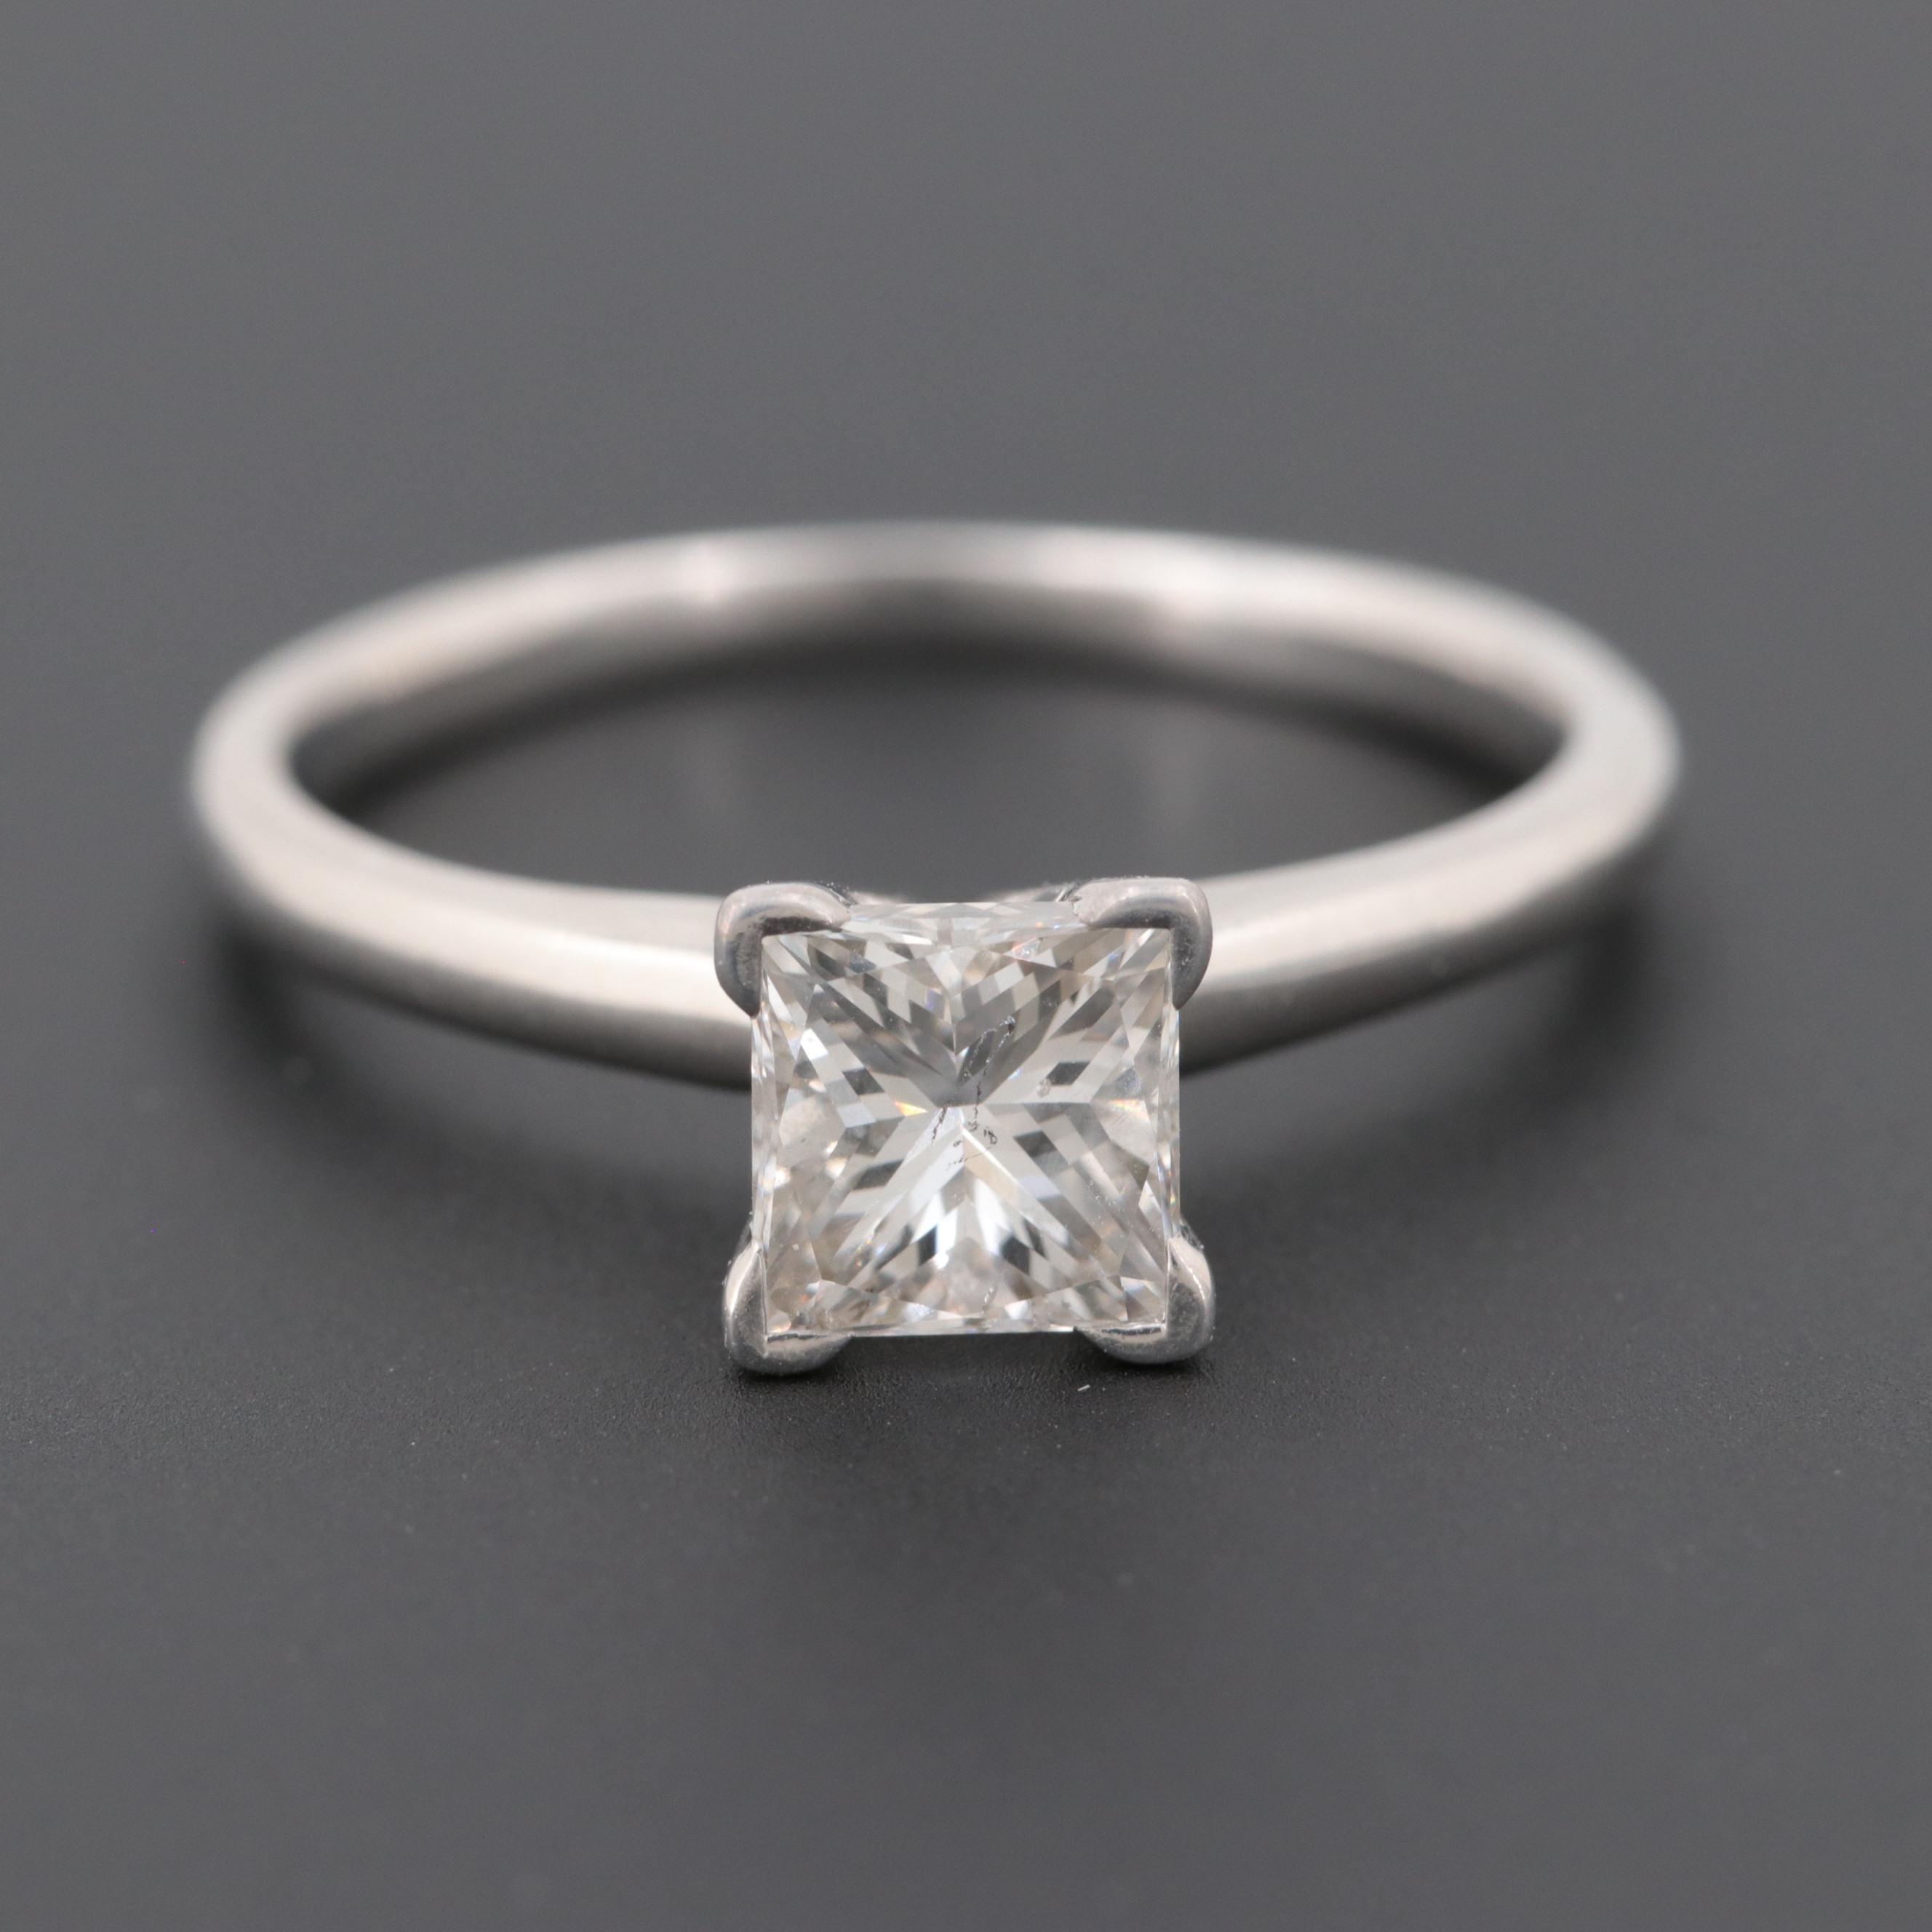 14K White Gold 1.20 CT Diamond Solitaire Ring